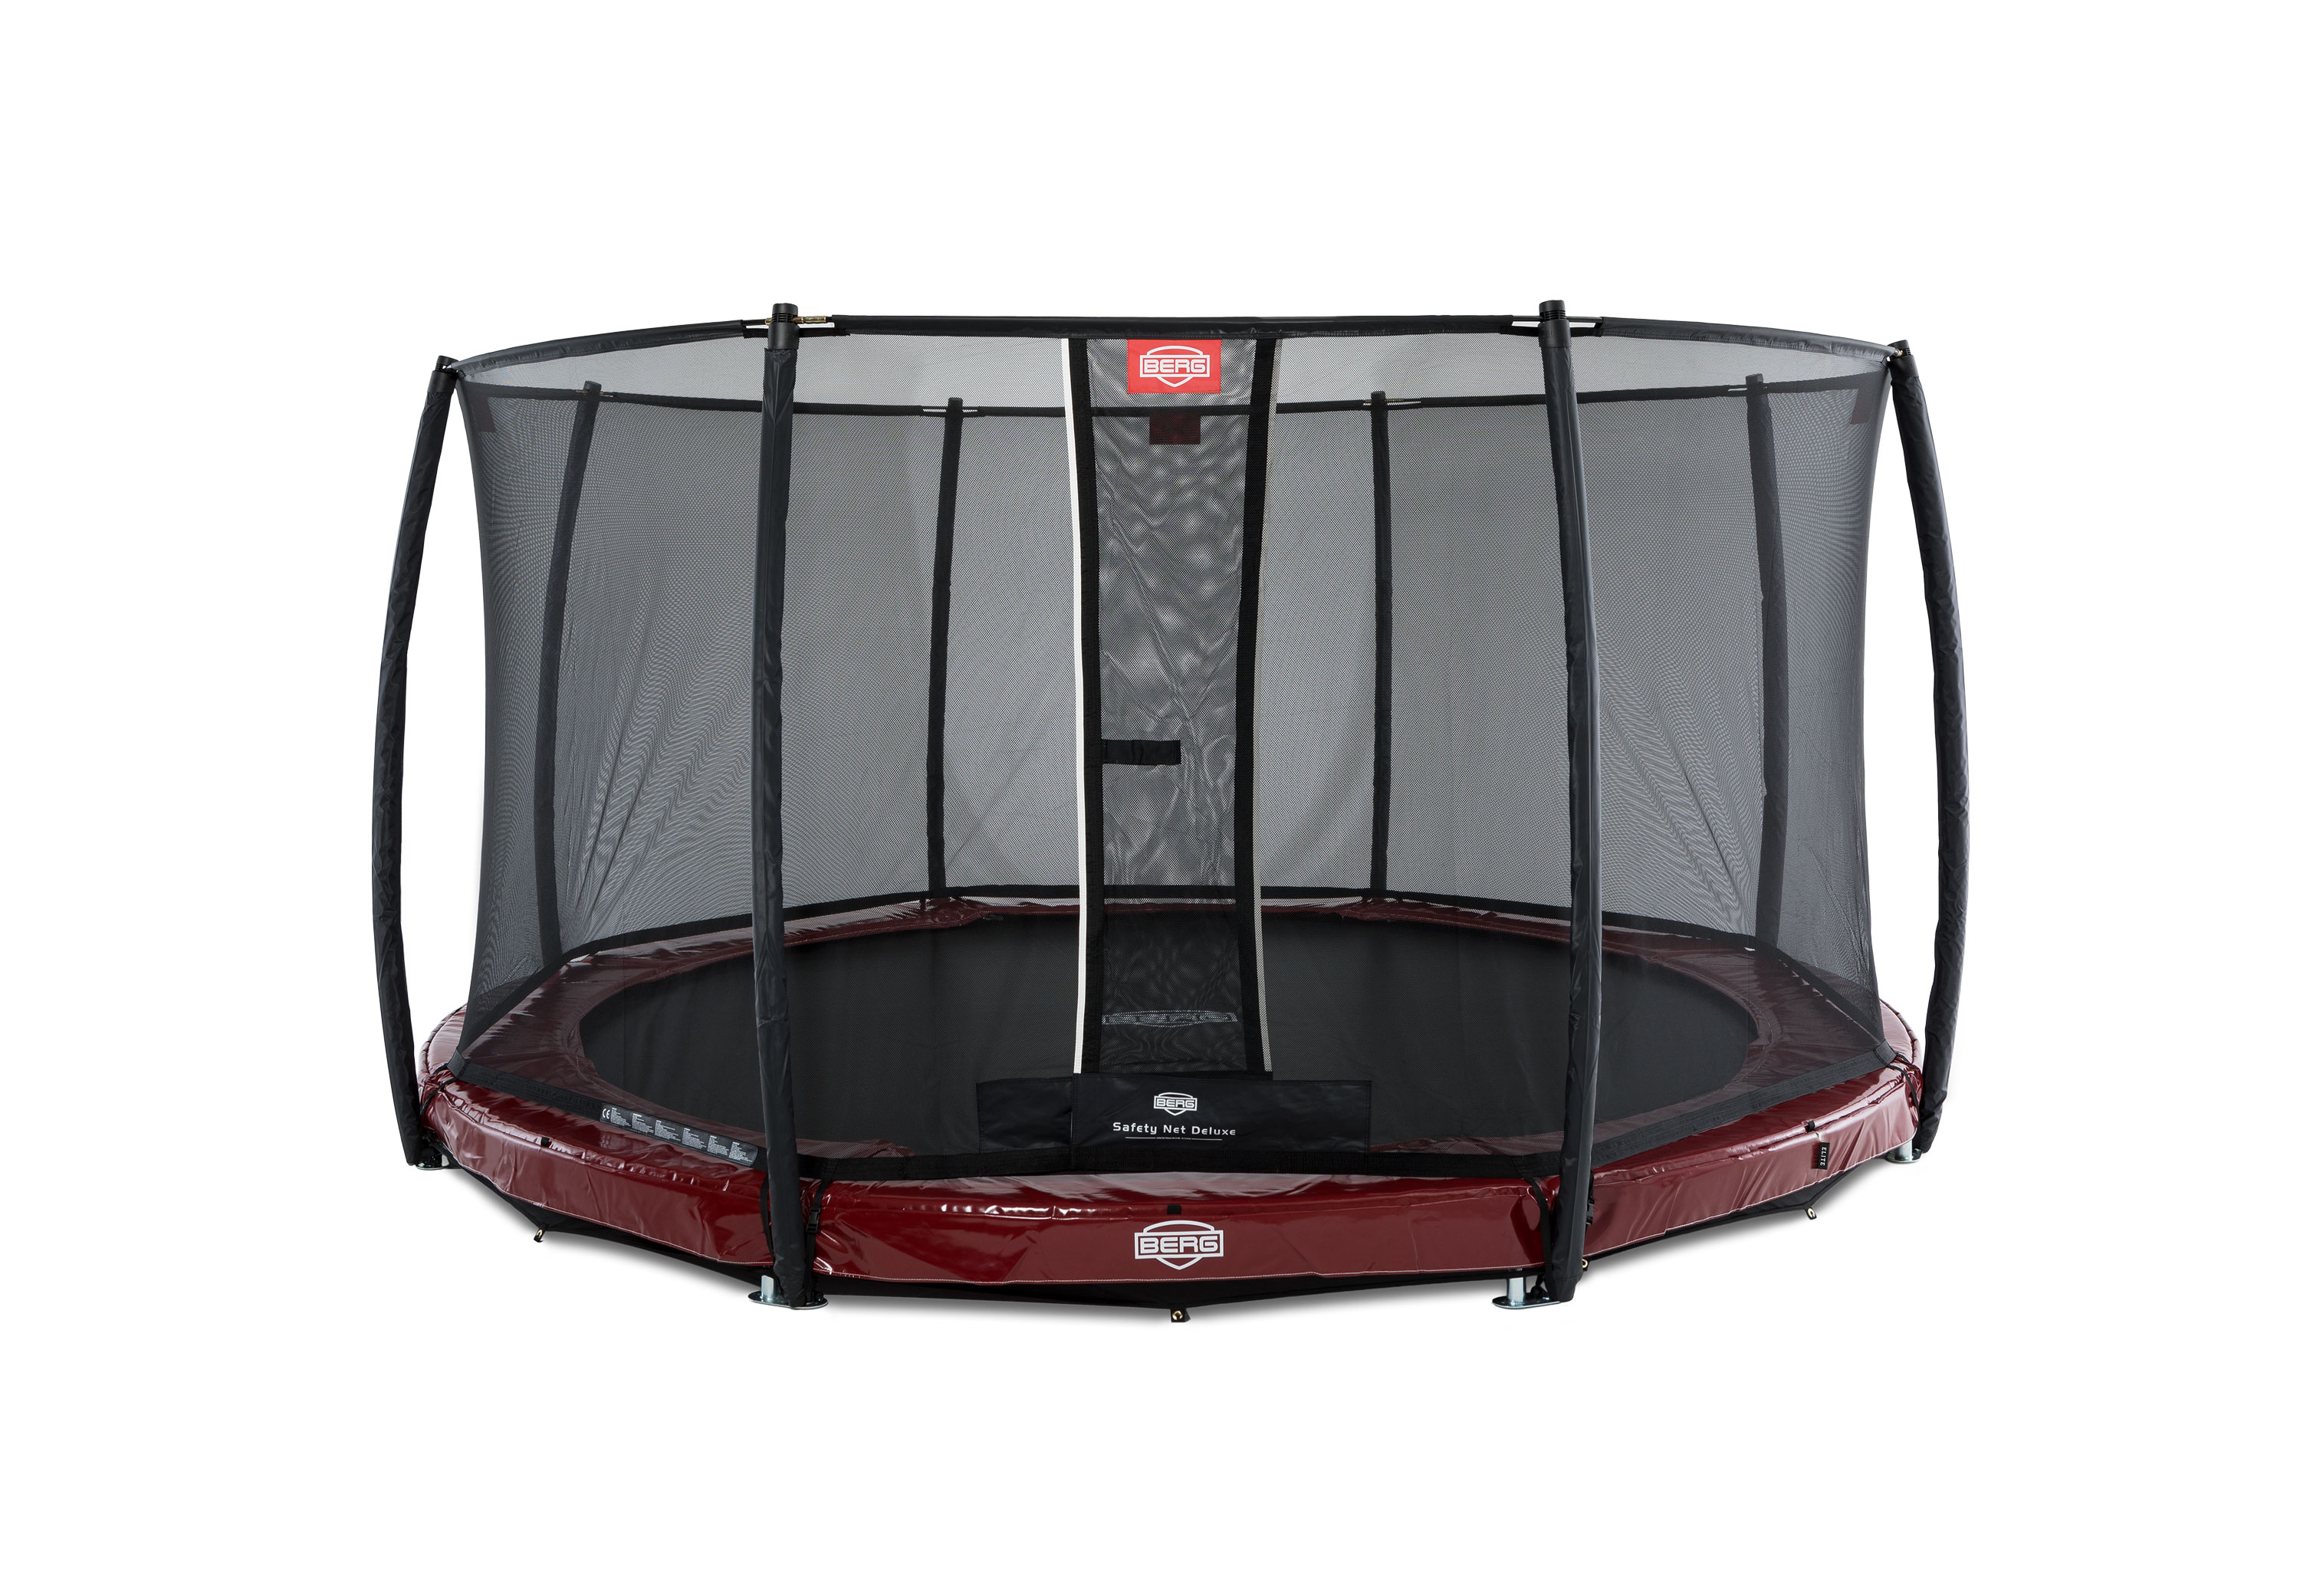 Trampolin InGround Elite rot + Netz Deluxe Ø430cm BERG toys Bild 1